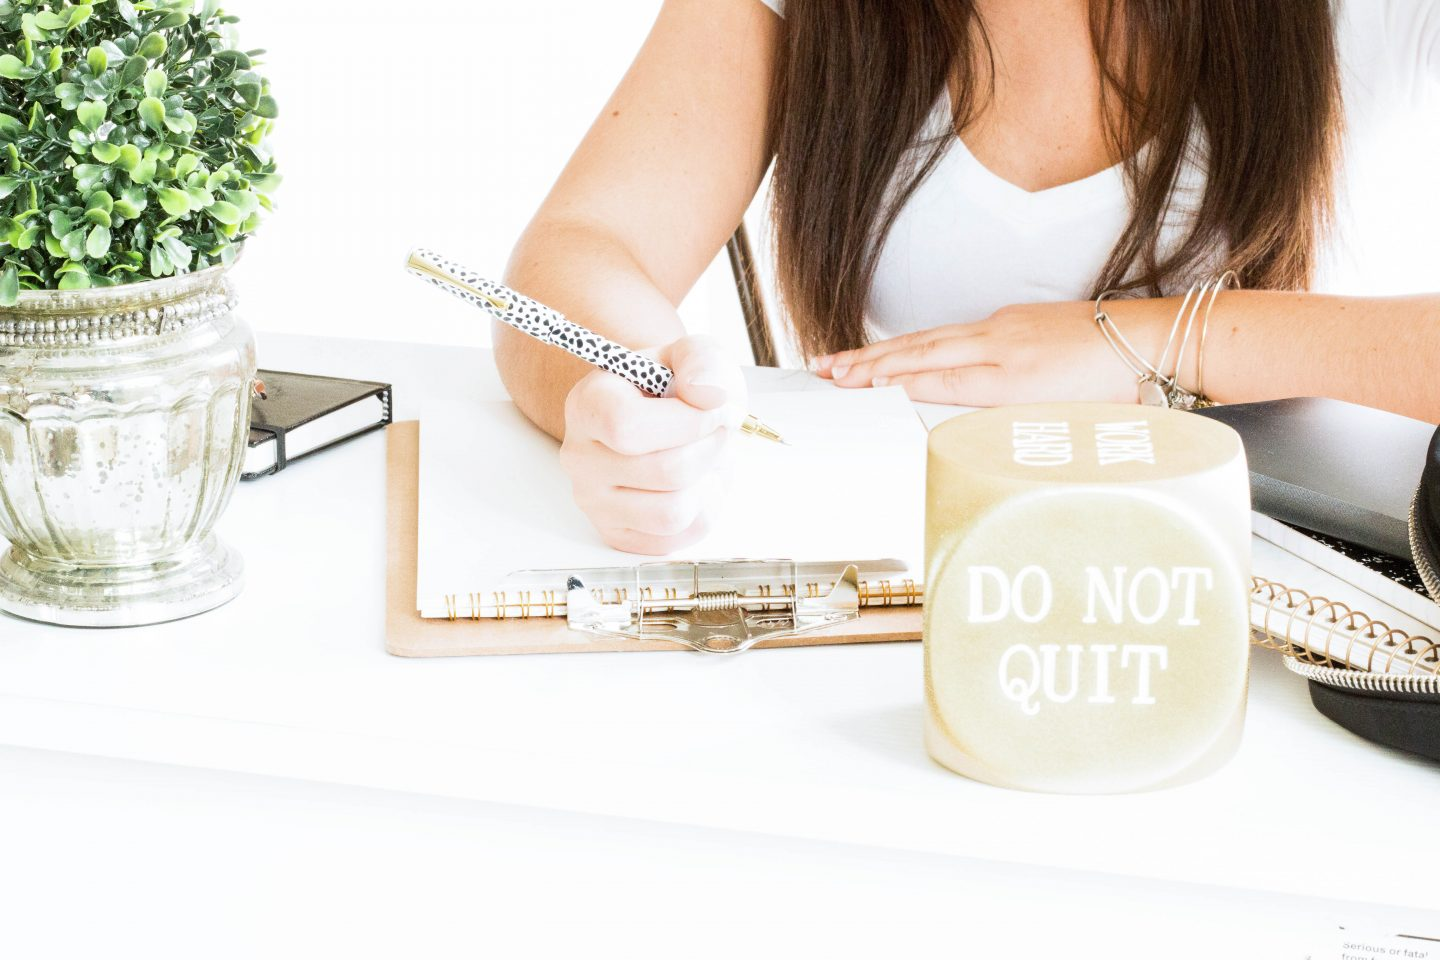 Do not quit desktop ornament. Gold tones. Woman writing. Stay focused on your goals.